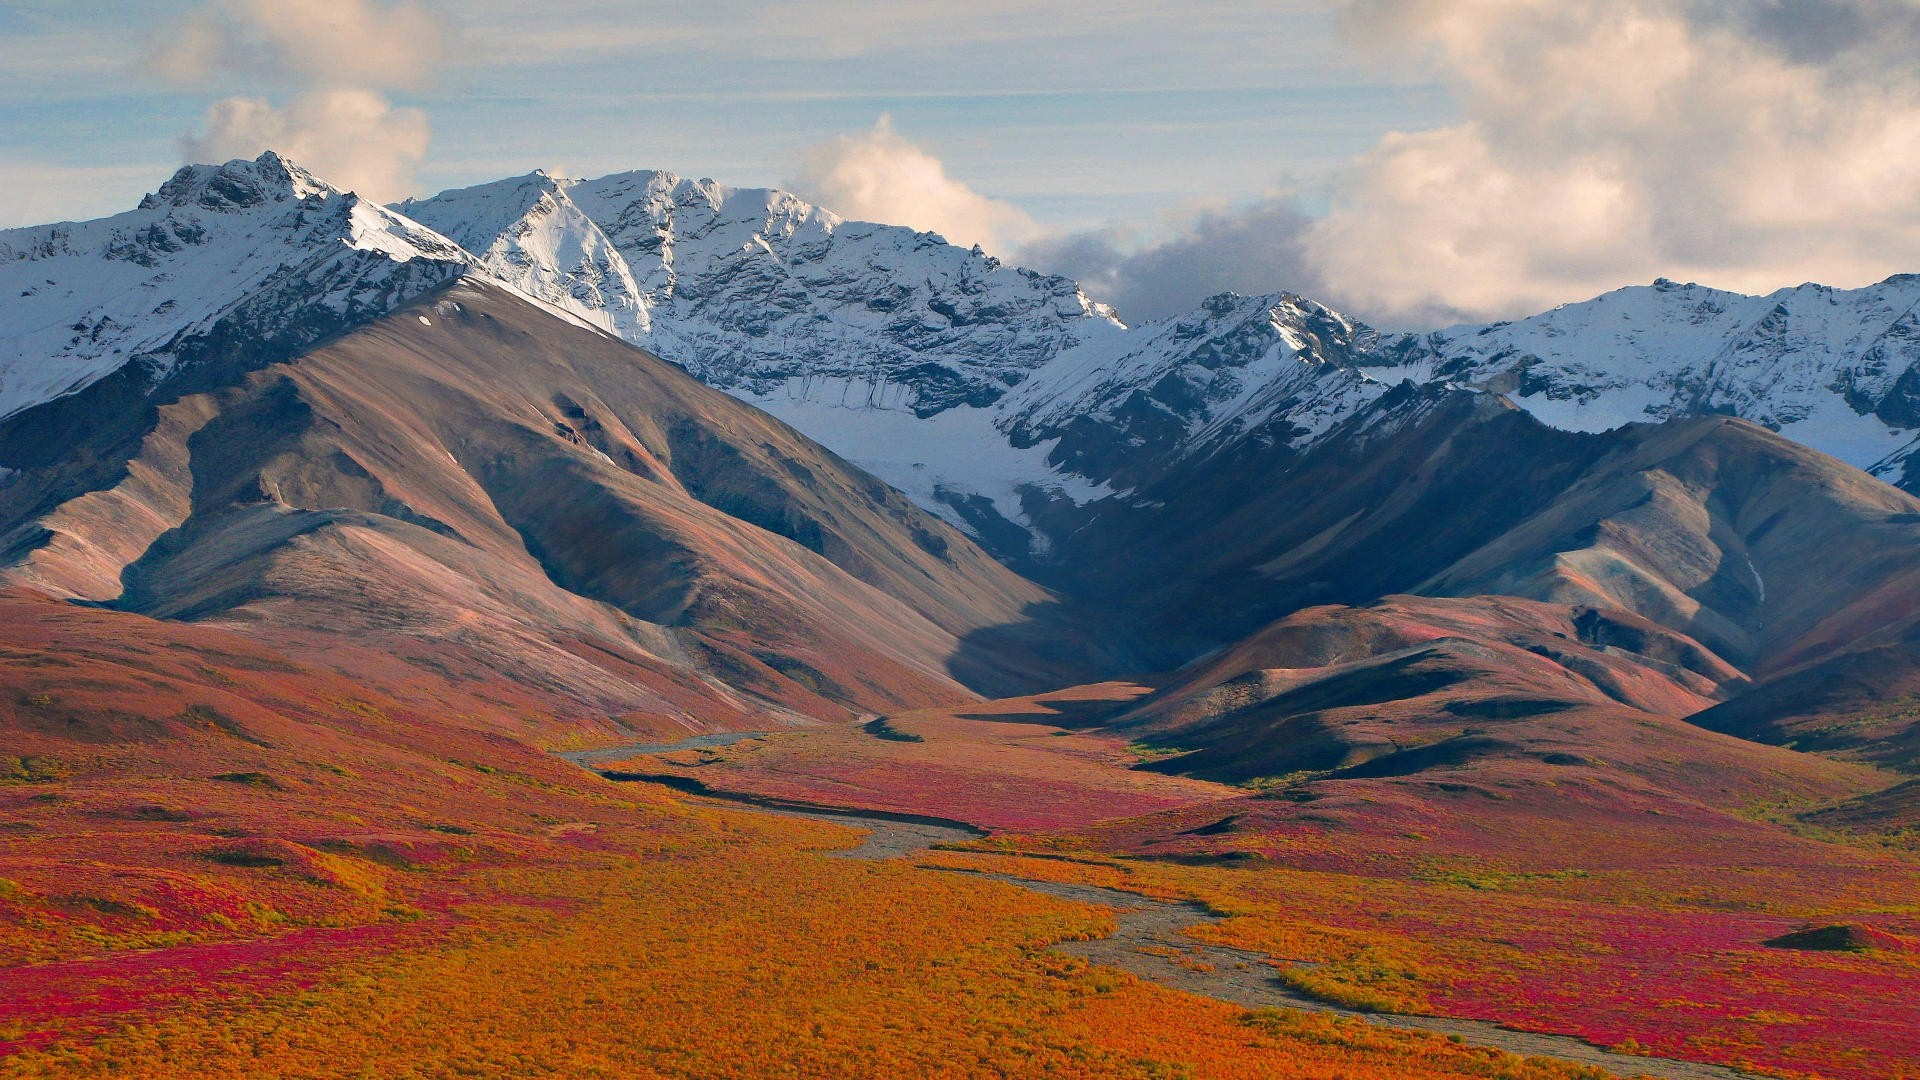 Denali National Park Mountain View in Alaska United States Wallpaper 1920x1080